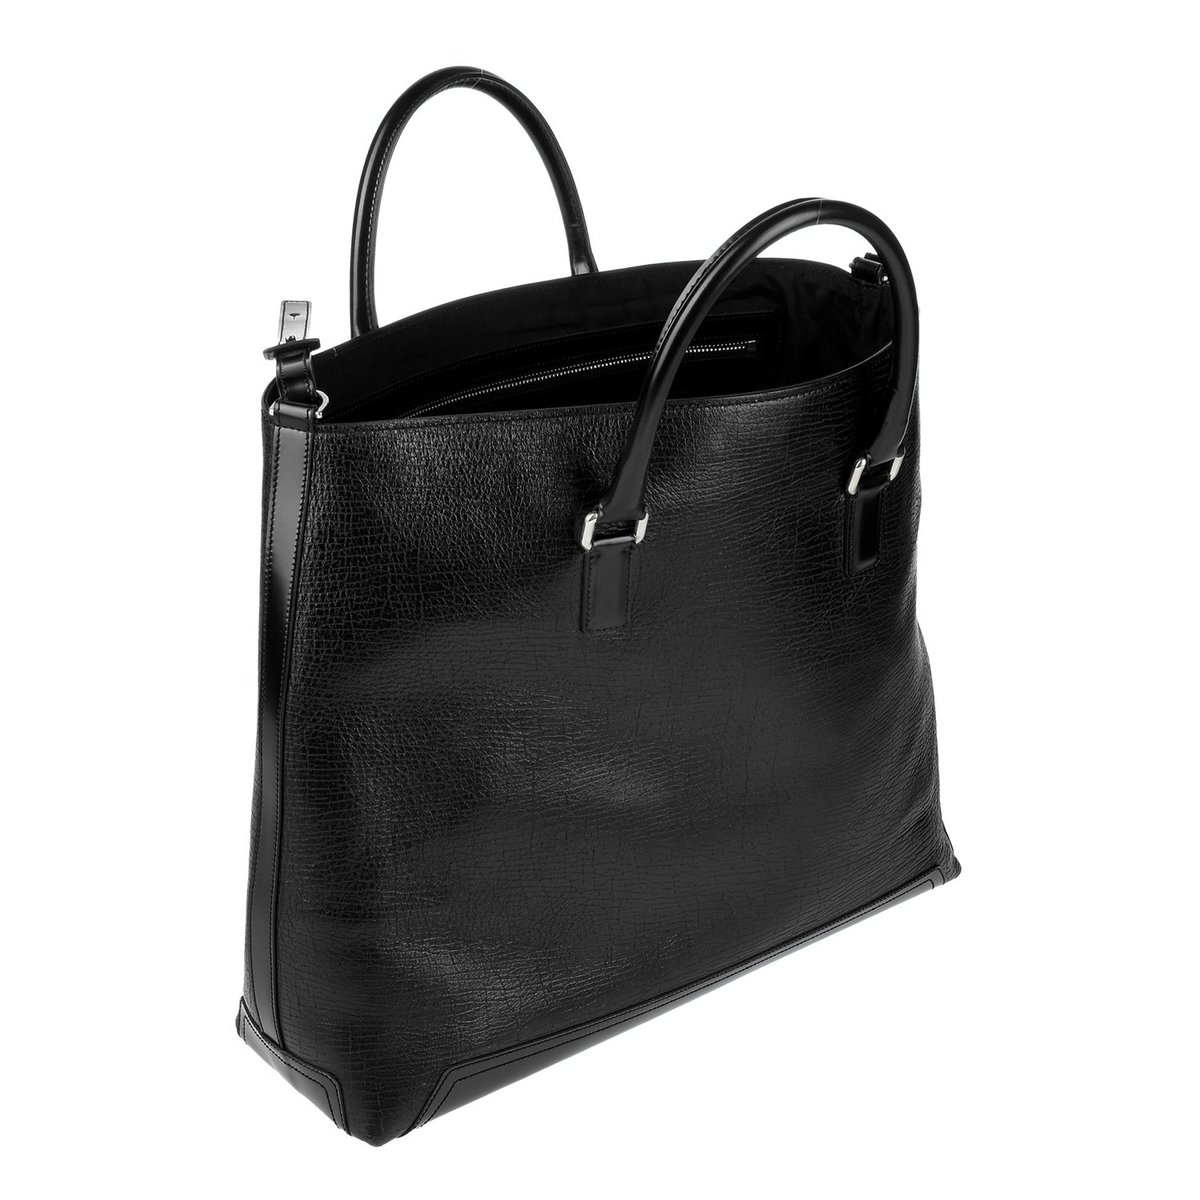 Andrea Incontri textured leather tote bag 2.jpg